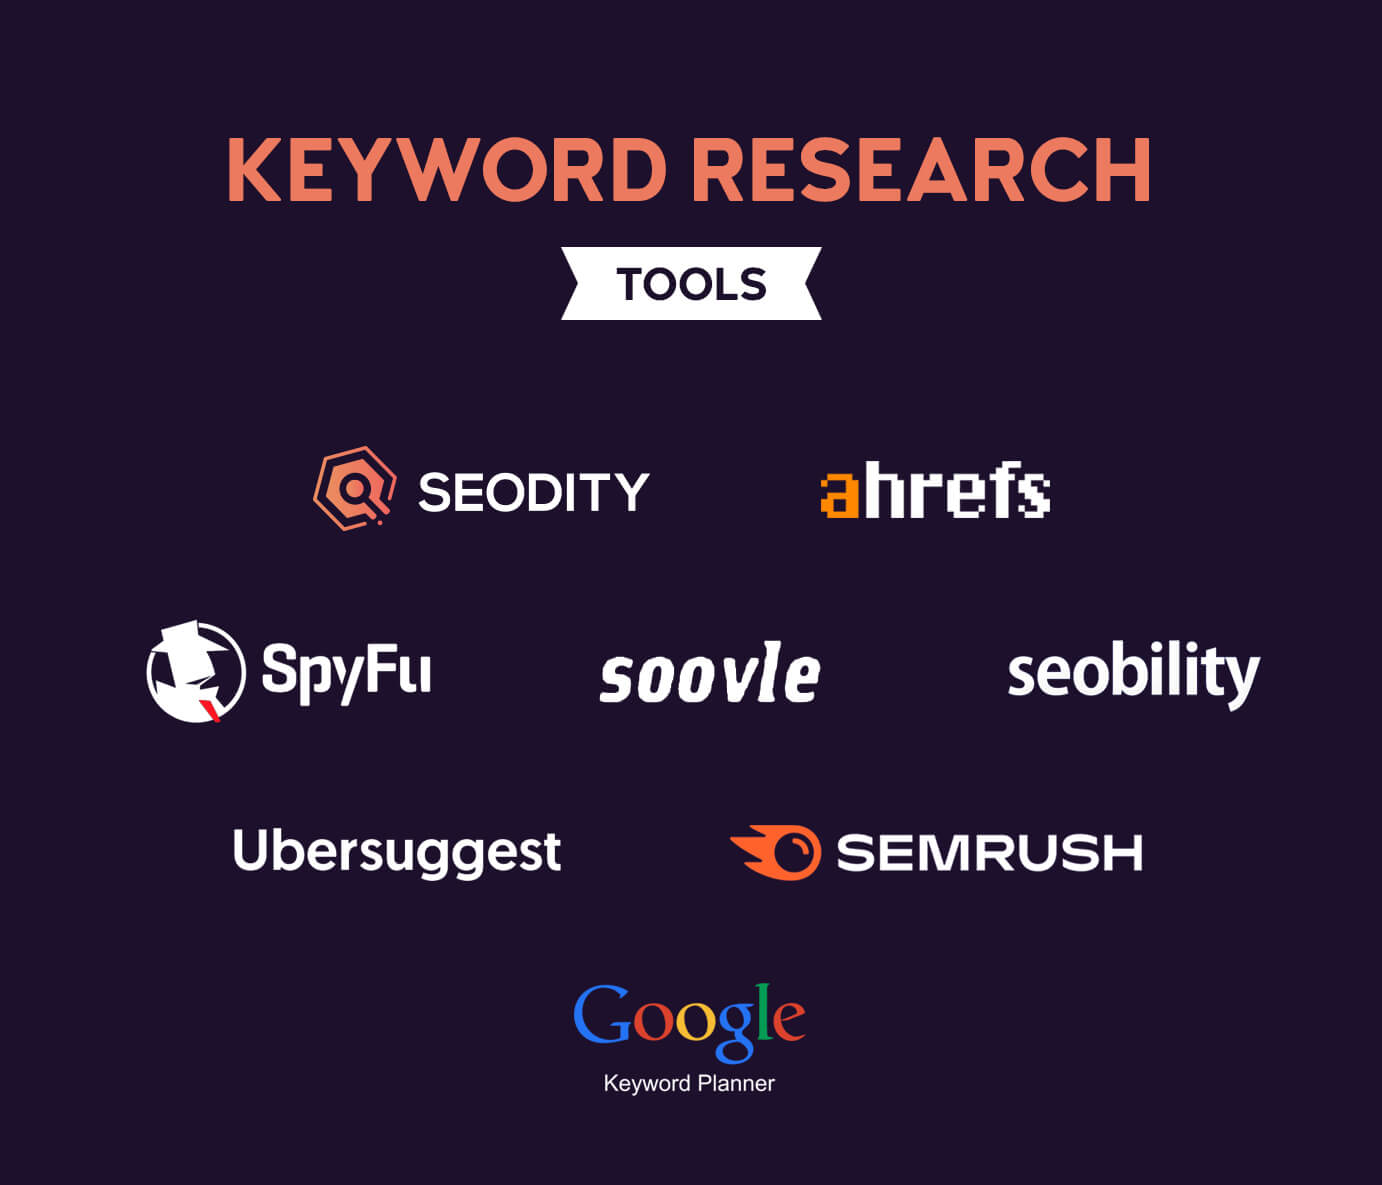 What is a keyword research tools?